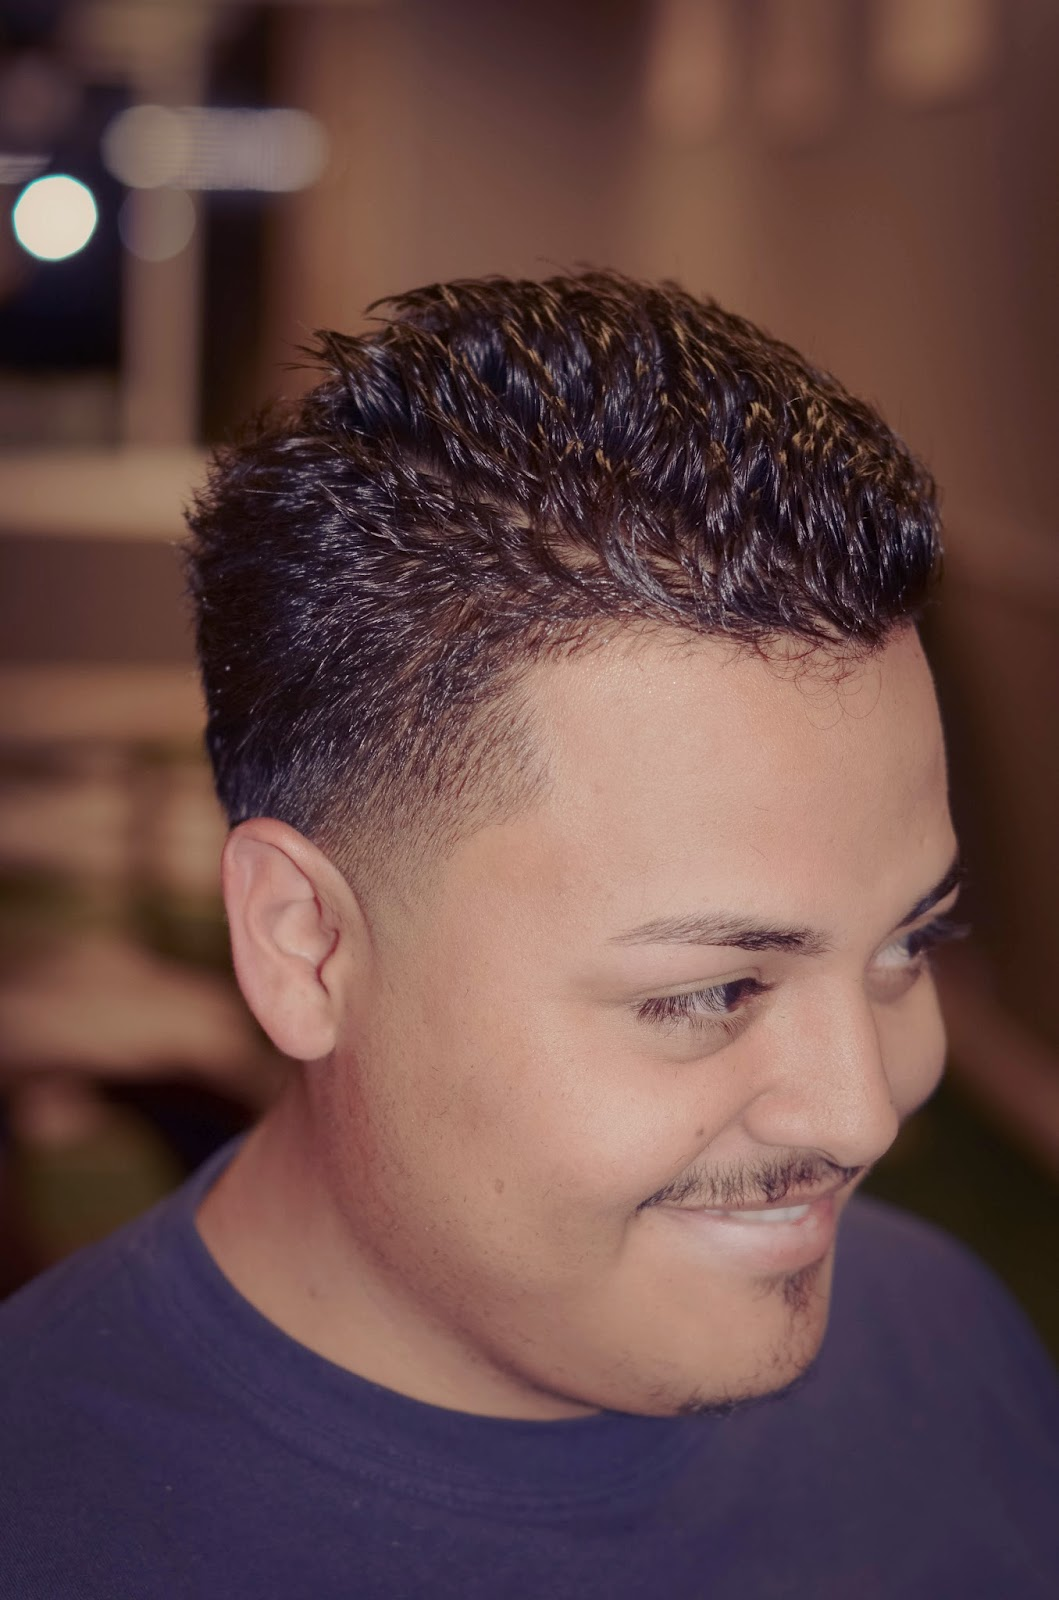 The Low Shadowed View Gives The Cut A Very Clean Look. Check Out Adrian,  Low Taper Fade.